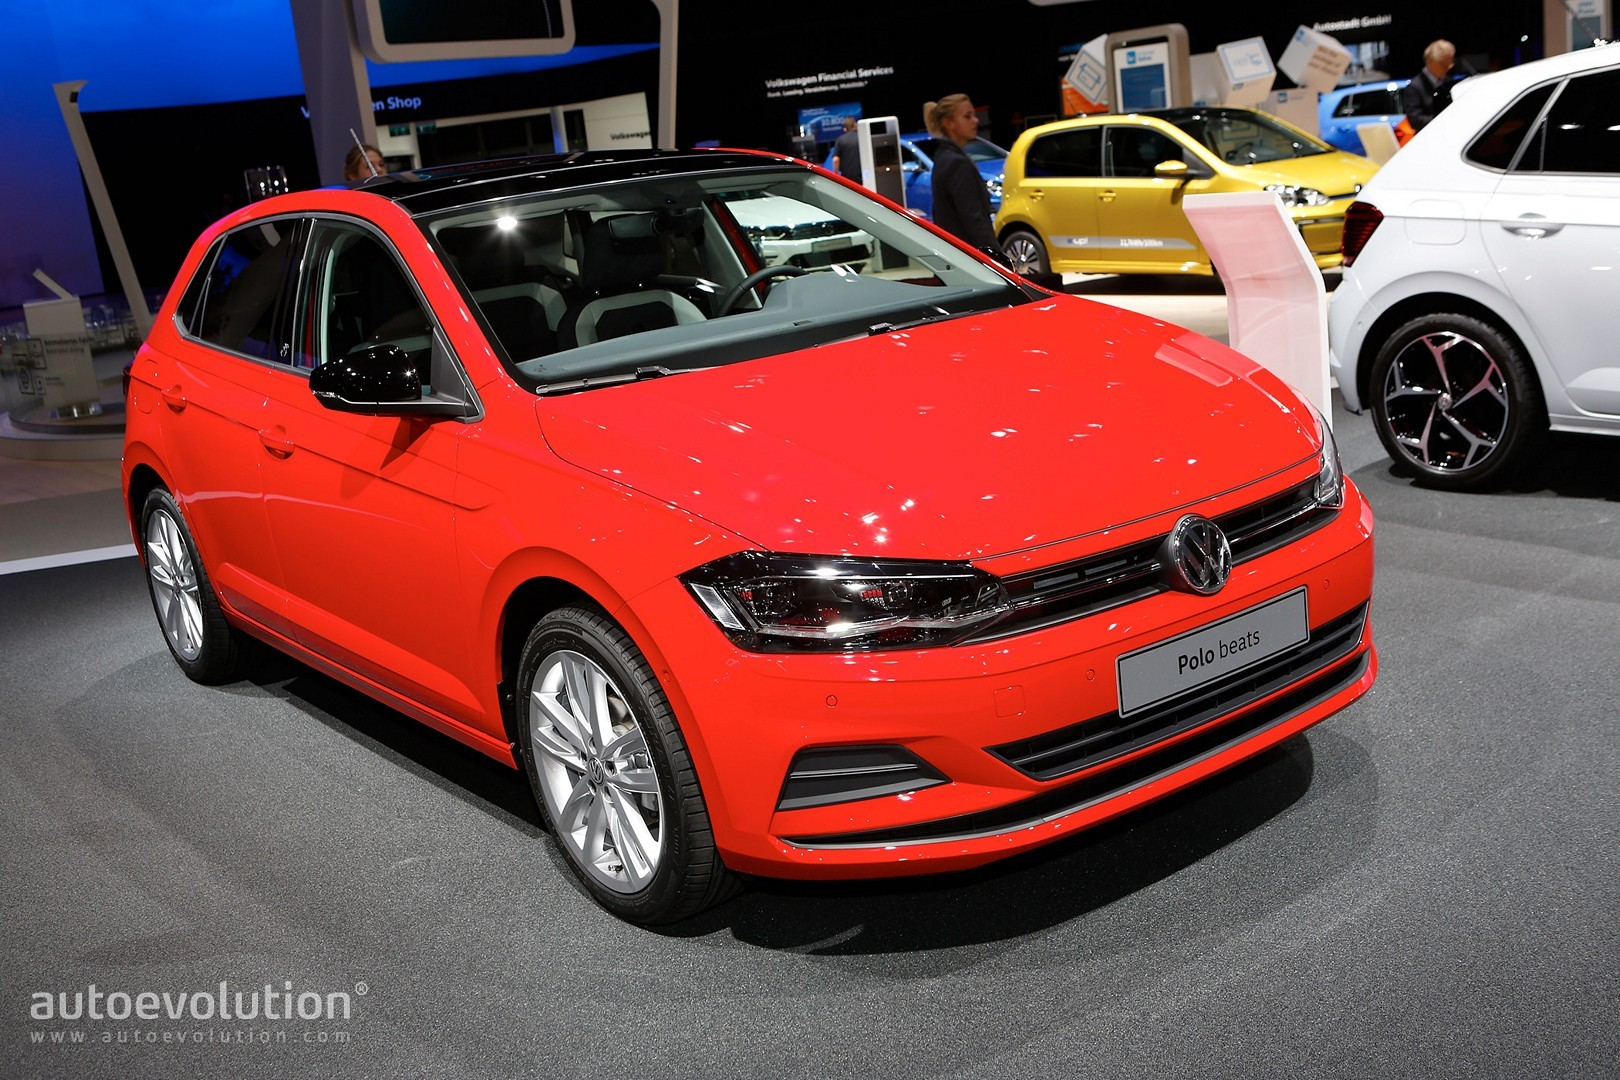 2018 vw polo beats r line is unusually colorful in frankfurt autoevolution. Black Bedroom Furniture Sets. Home Design Ideas